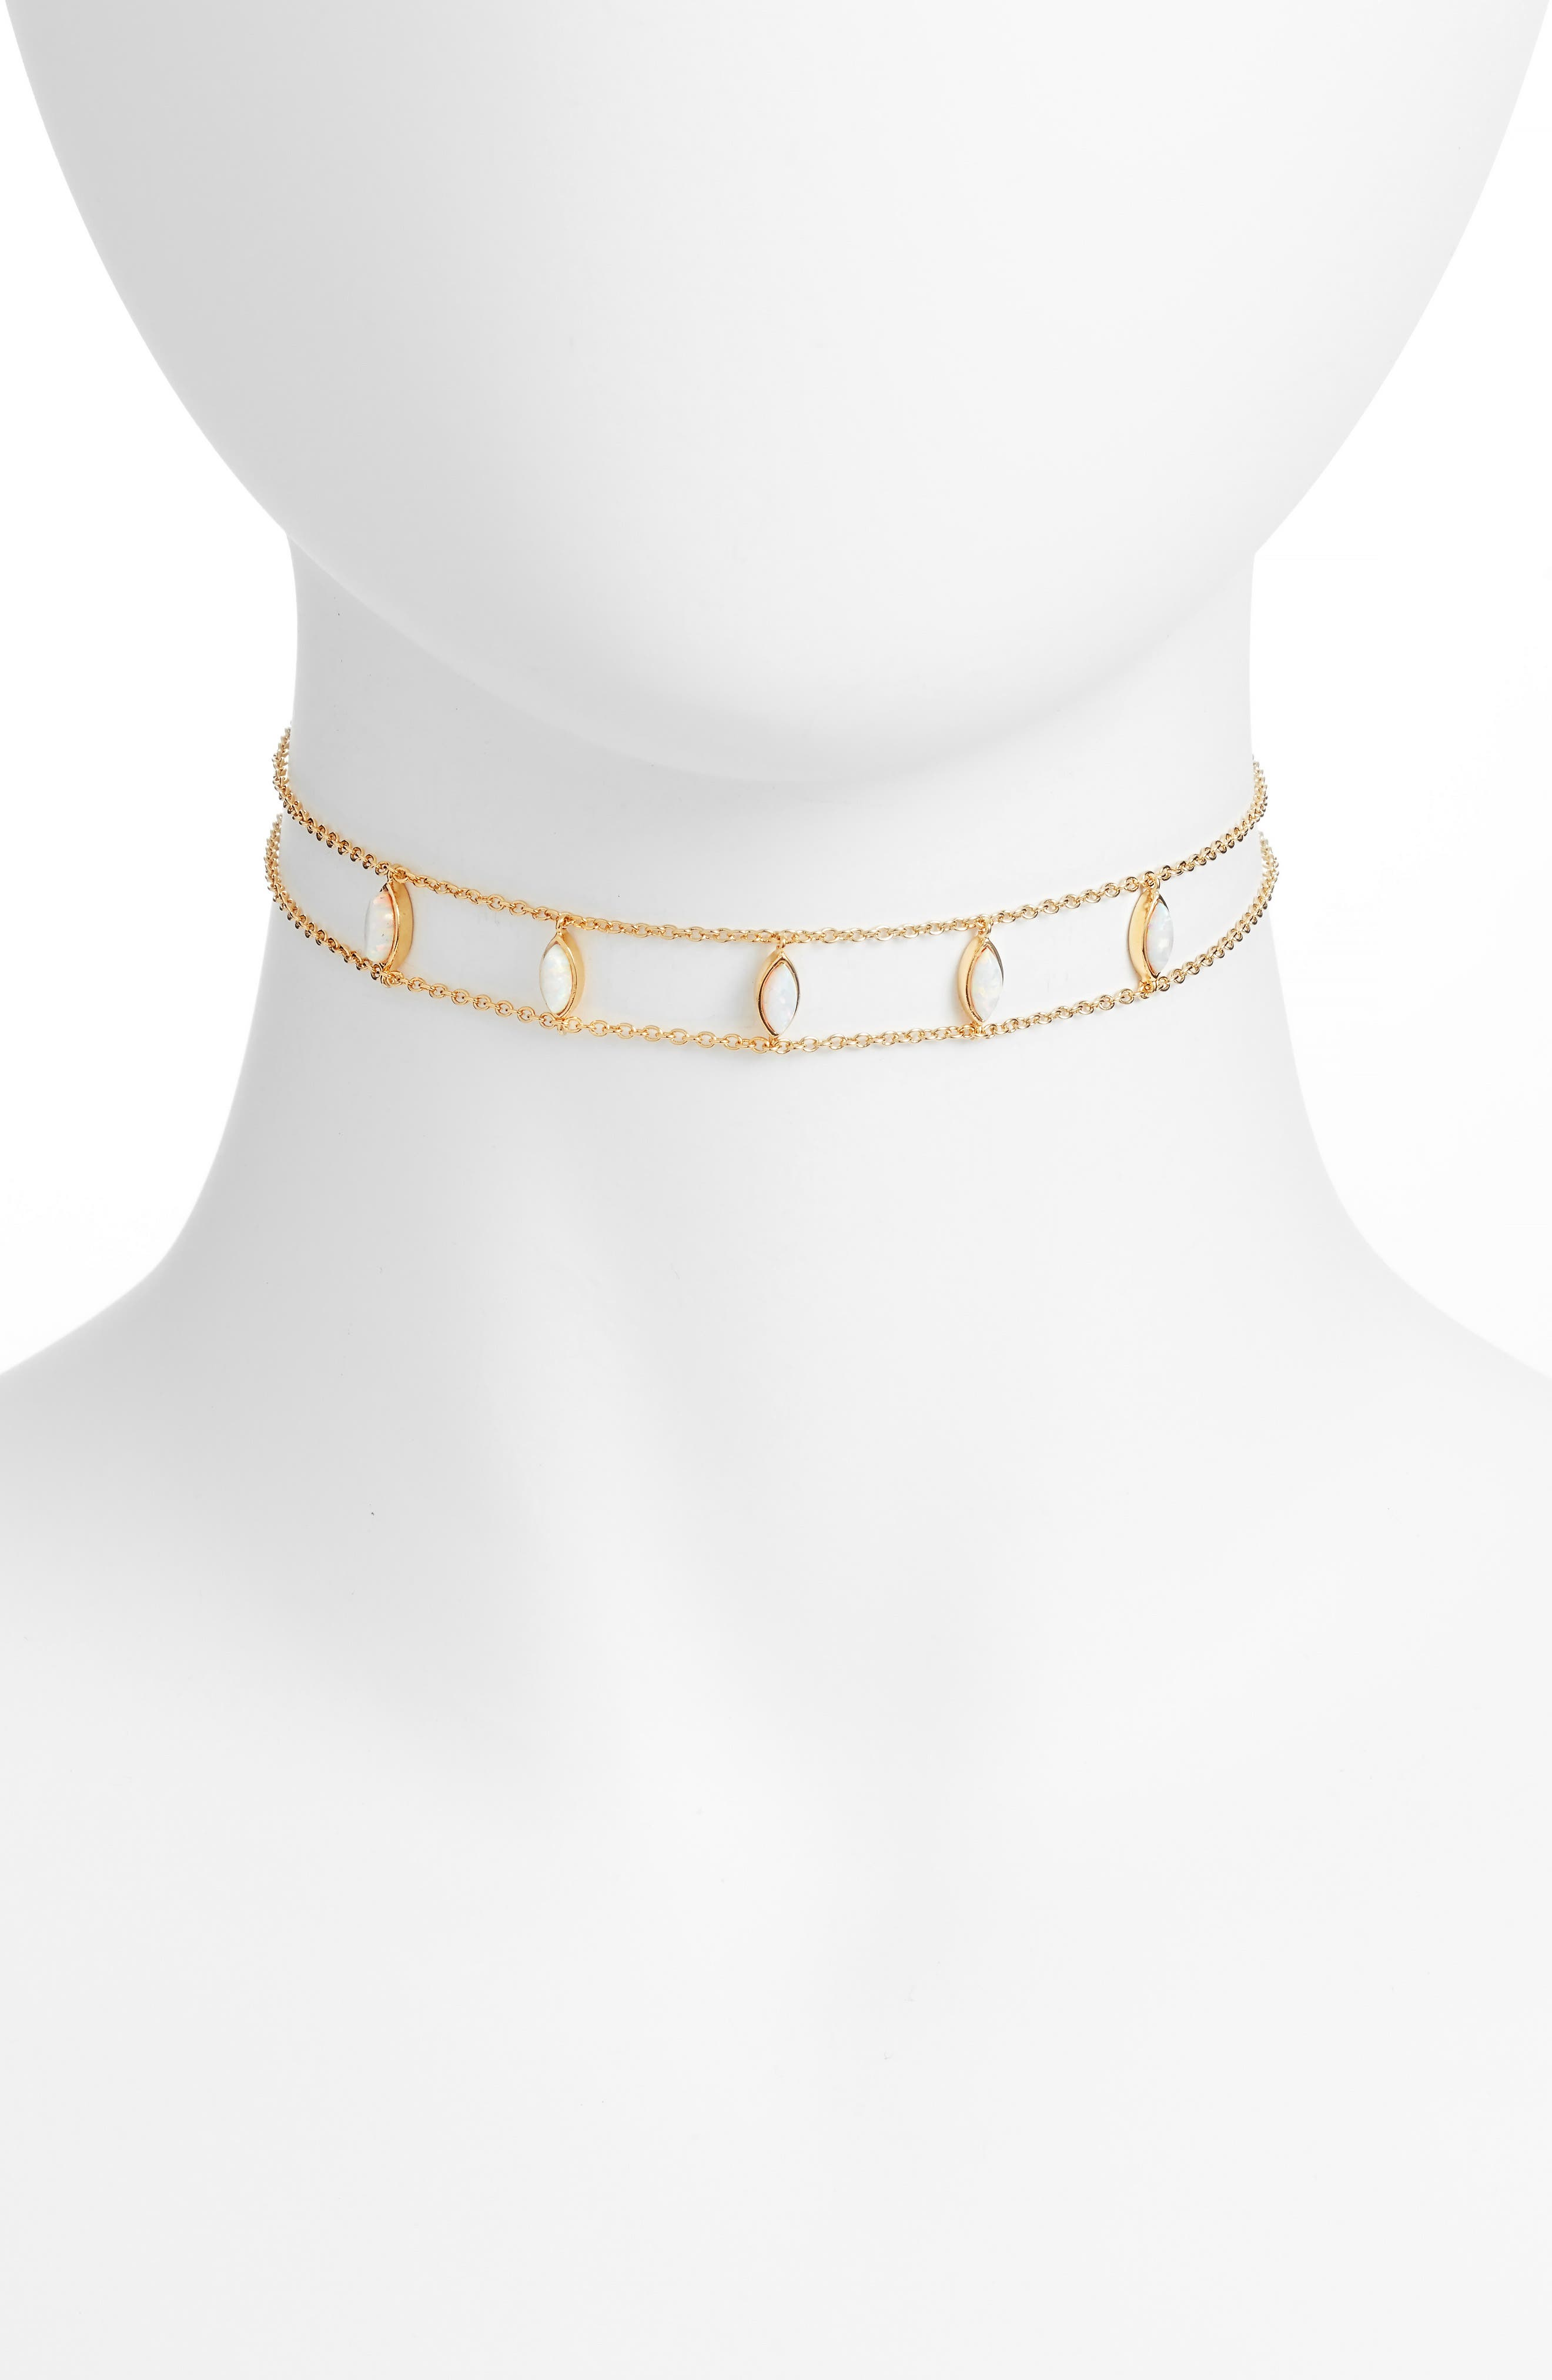 Joie Marquis Choker Necklace,                         Main,                         color, Gold/ Simulated Opal